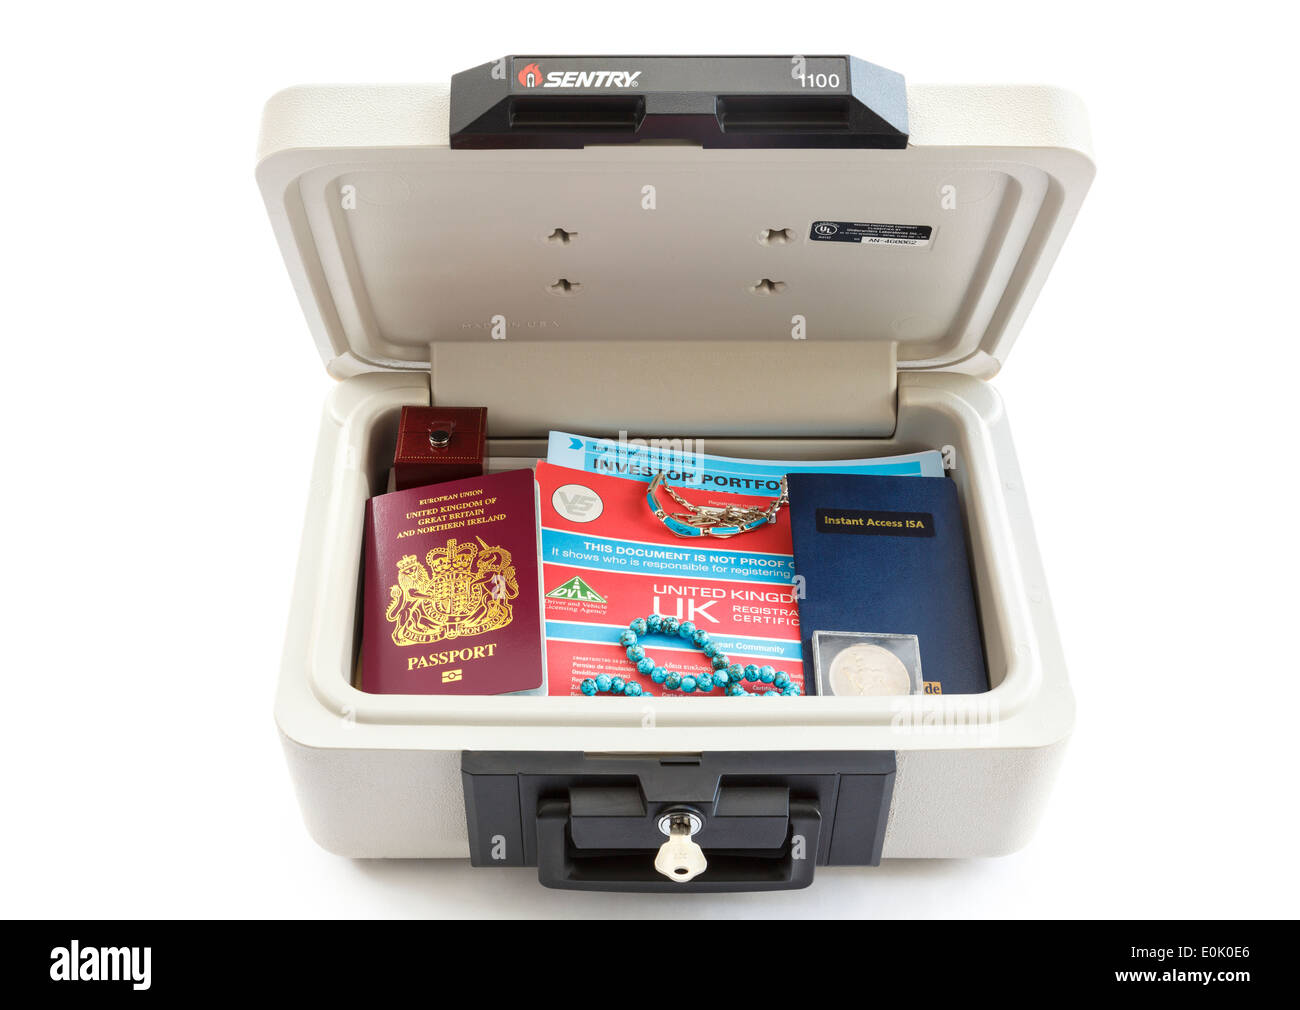 sentry firesafe security chest with lid open containing valuable items important paper documents to - Sentry Fire Safe